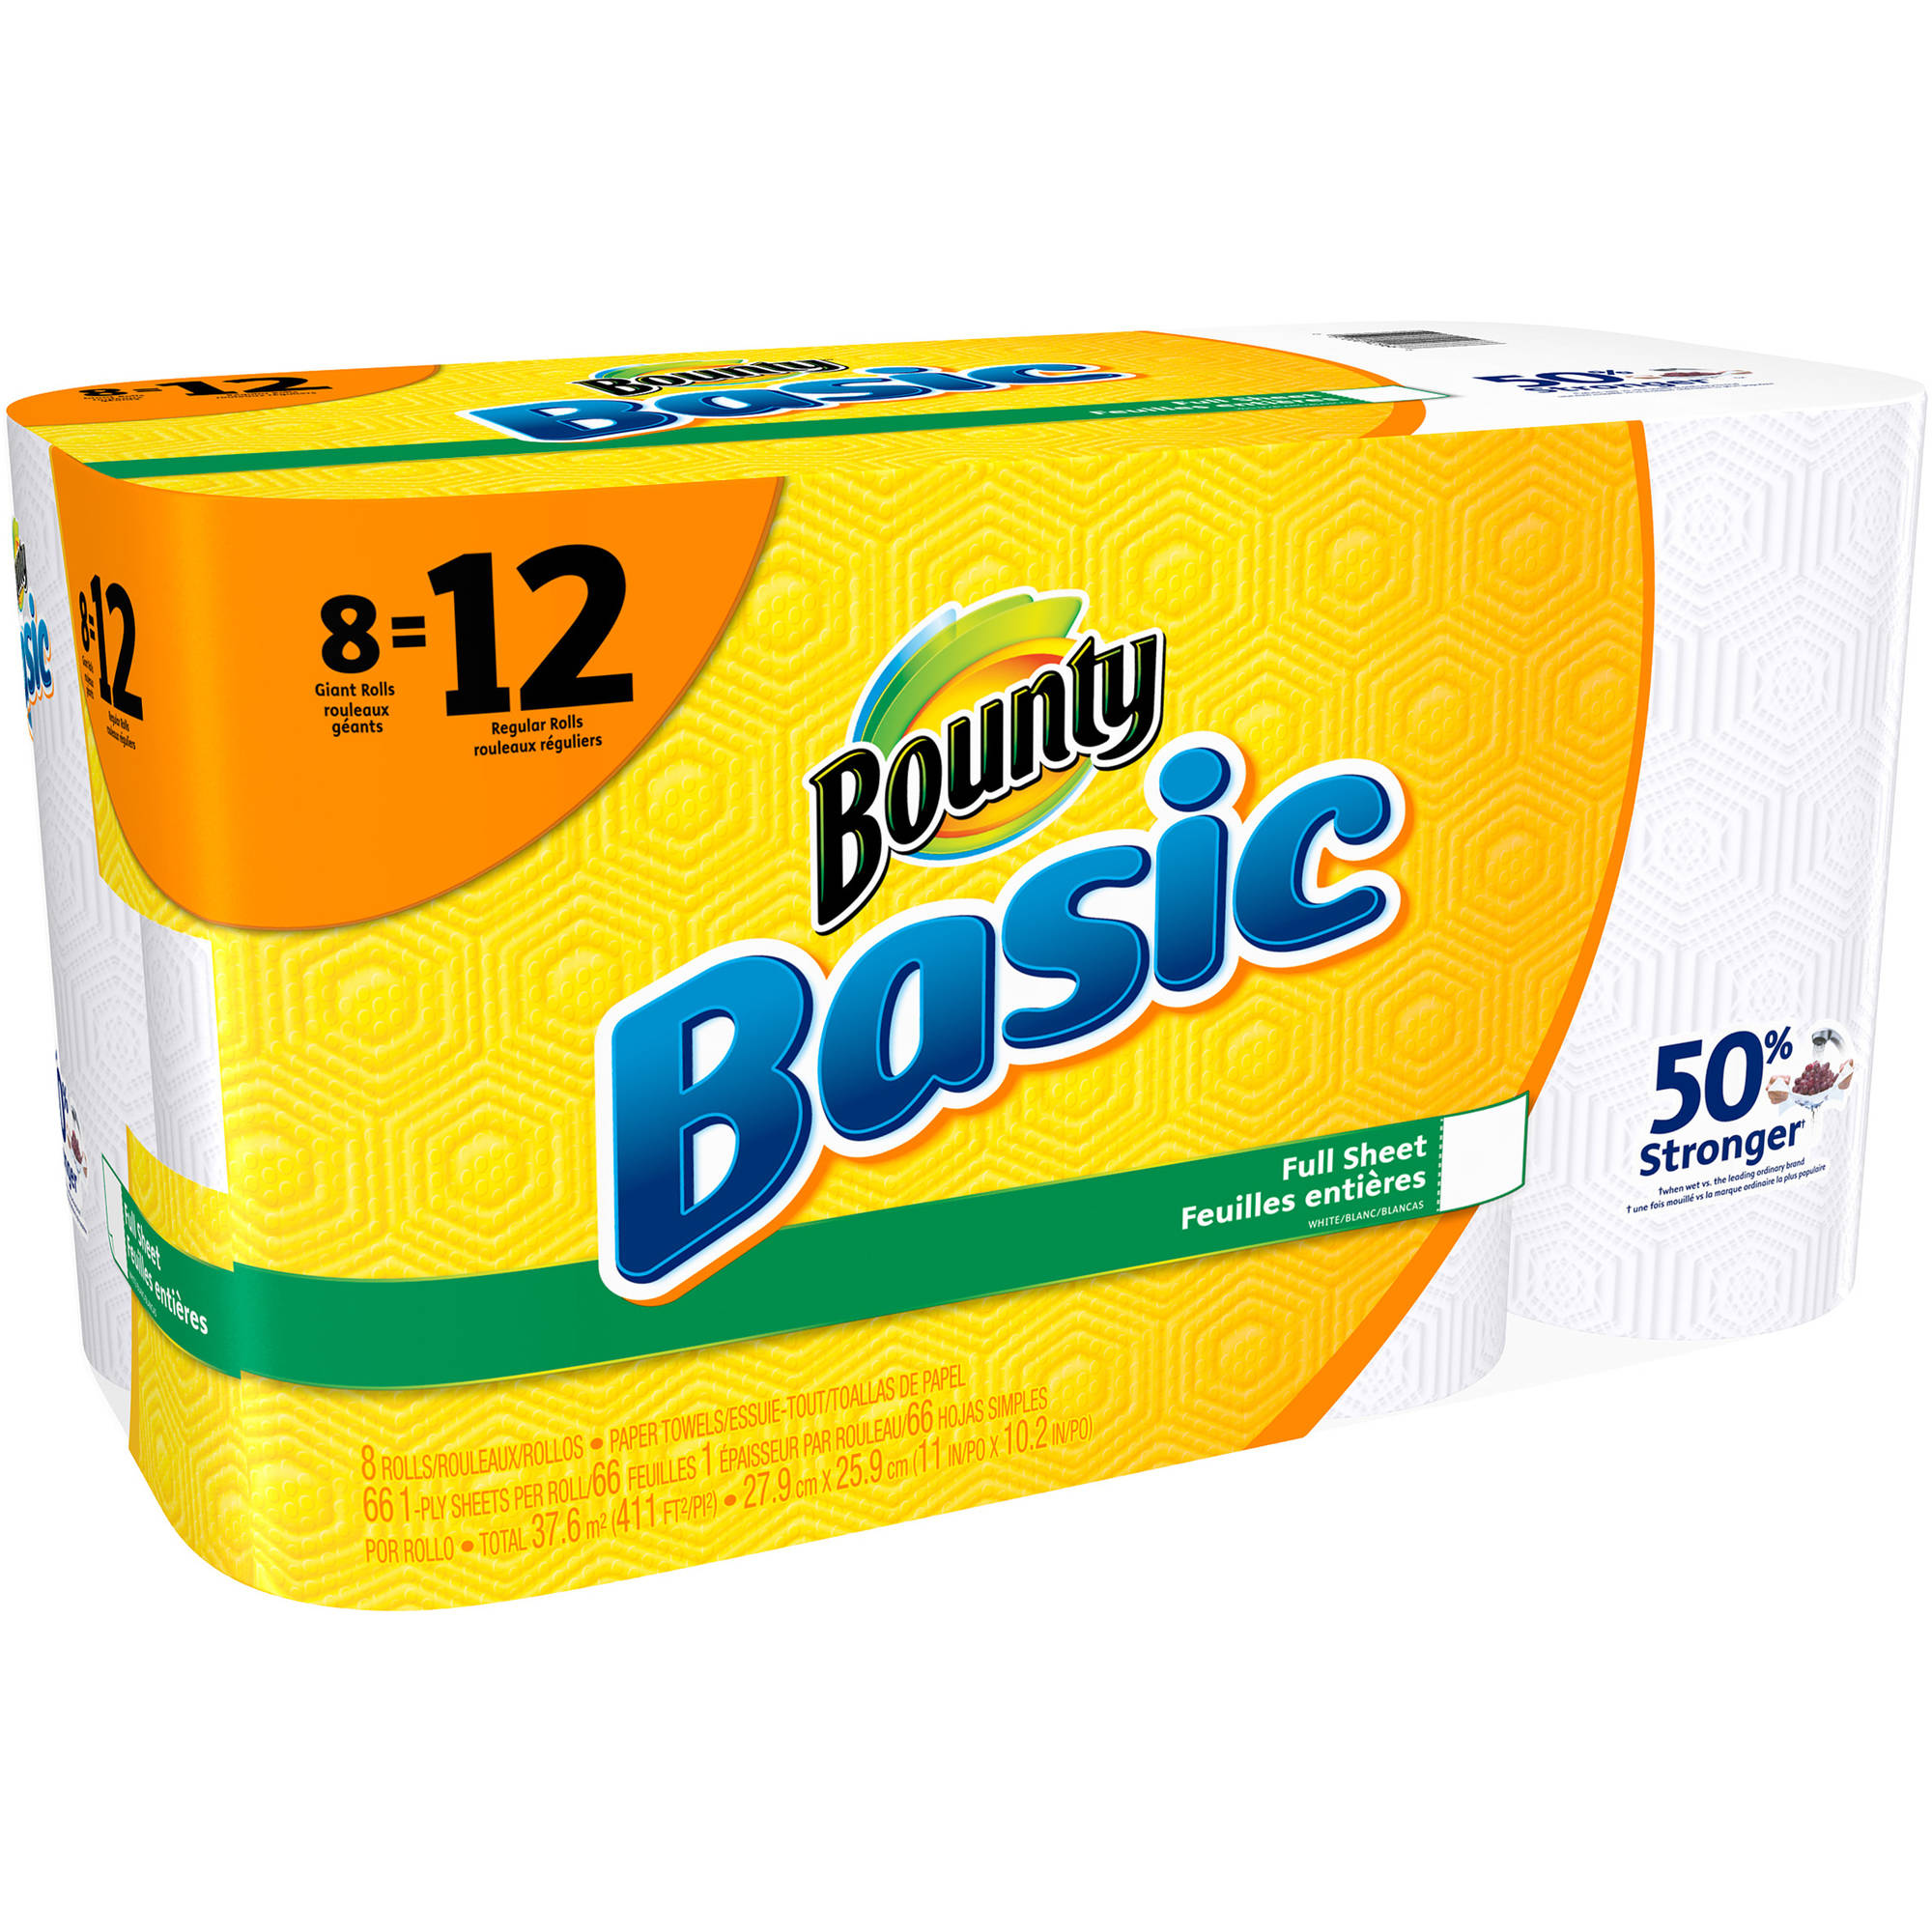 Bounty Basic Paper Towels Giant Rolls, 66 sheets, 8 rolls